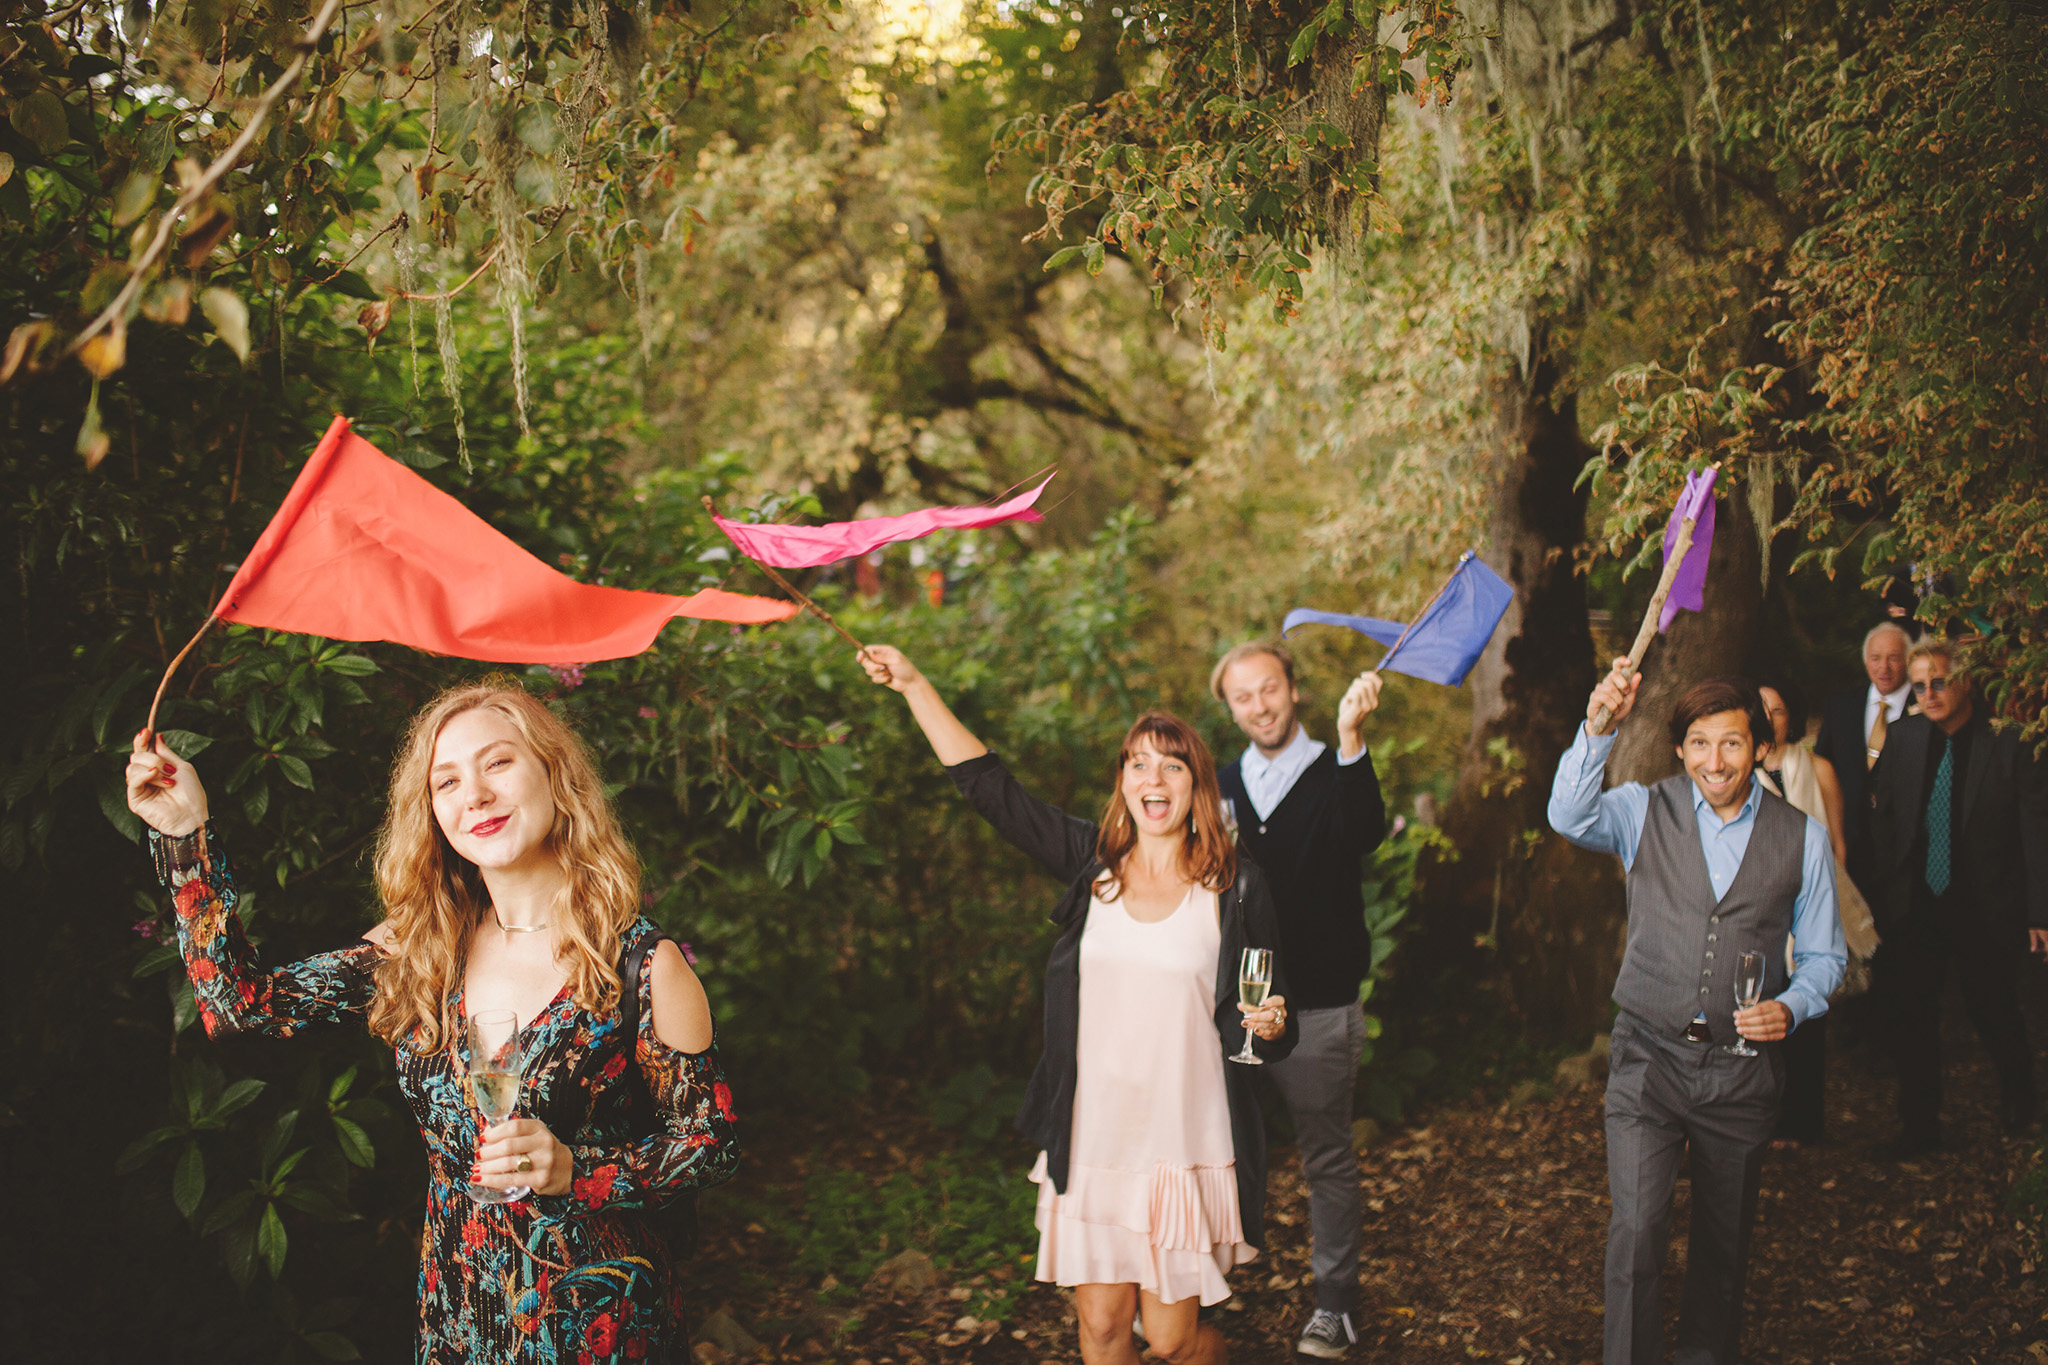 Northern California outdoor wedding ceremony harley farms wedding in pescadero